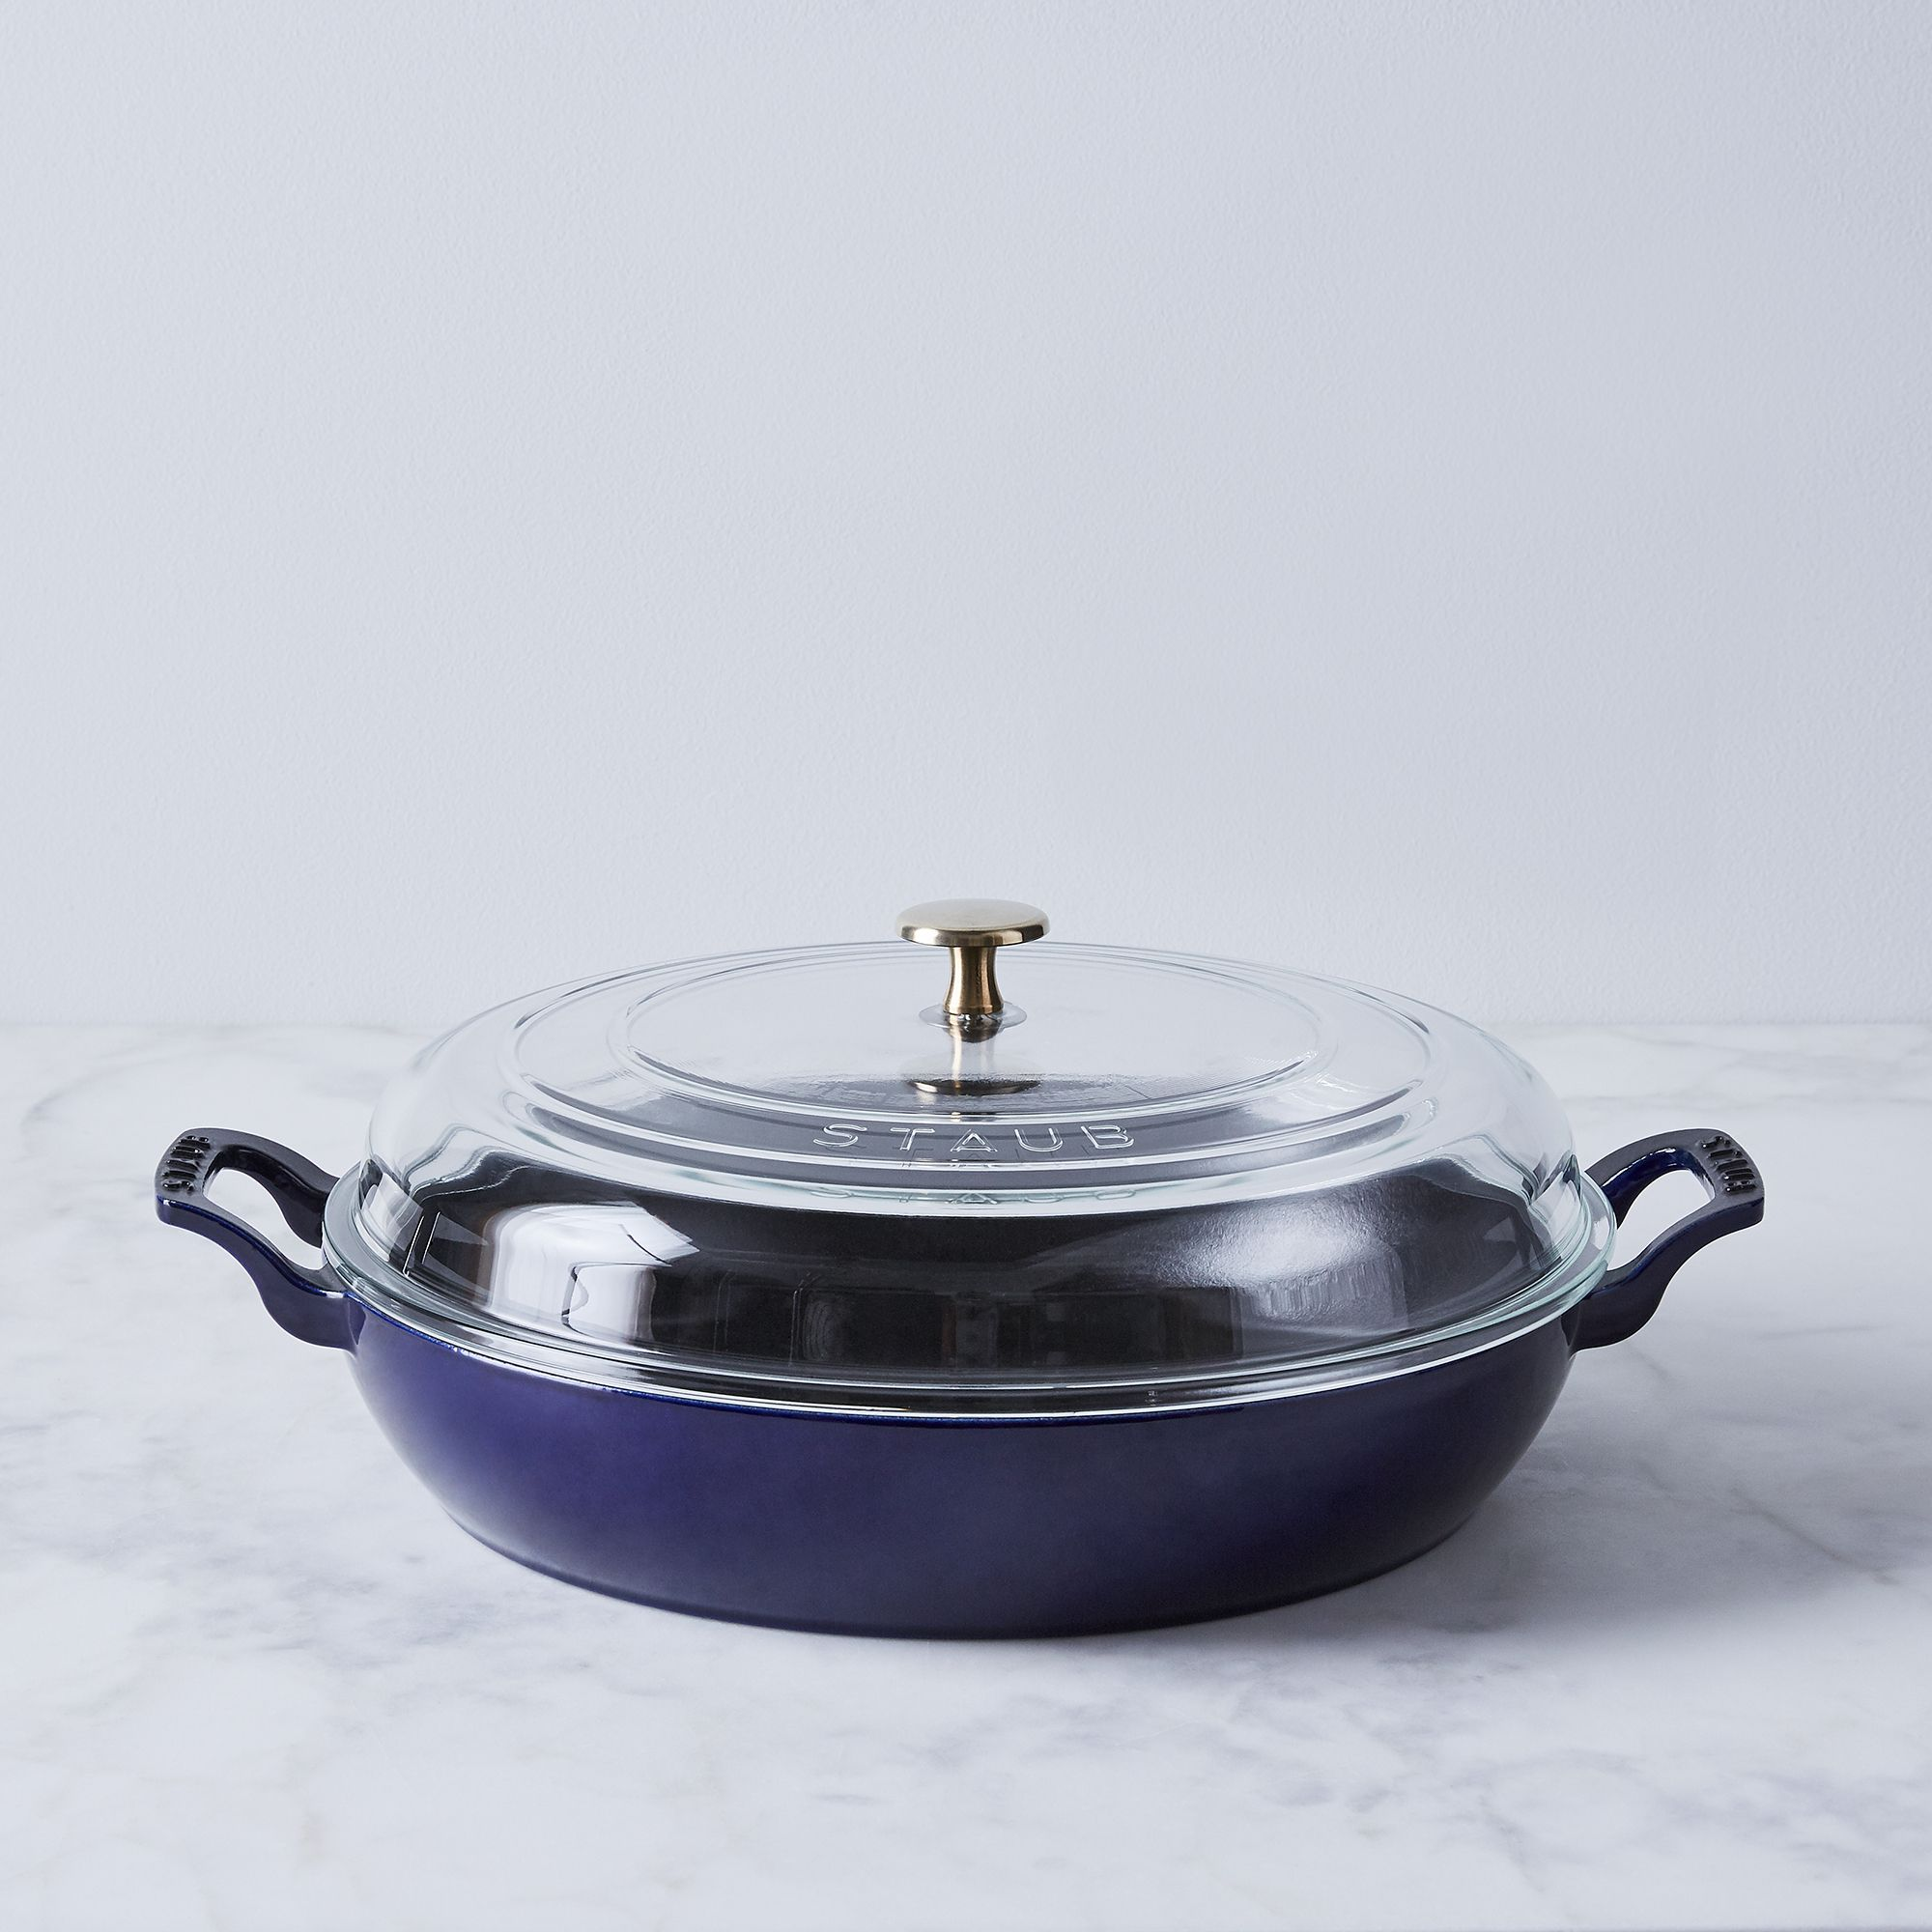 49cbfbf6 b595 4e11 9ec3 7f3e69173cb3  2018 0109 staub food52 x staub multi use braiser w glass lid 3.5qt blue with brass silo bobbi lin 6108